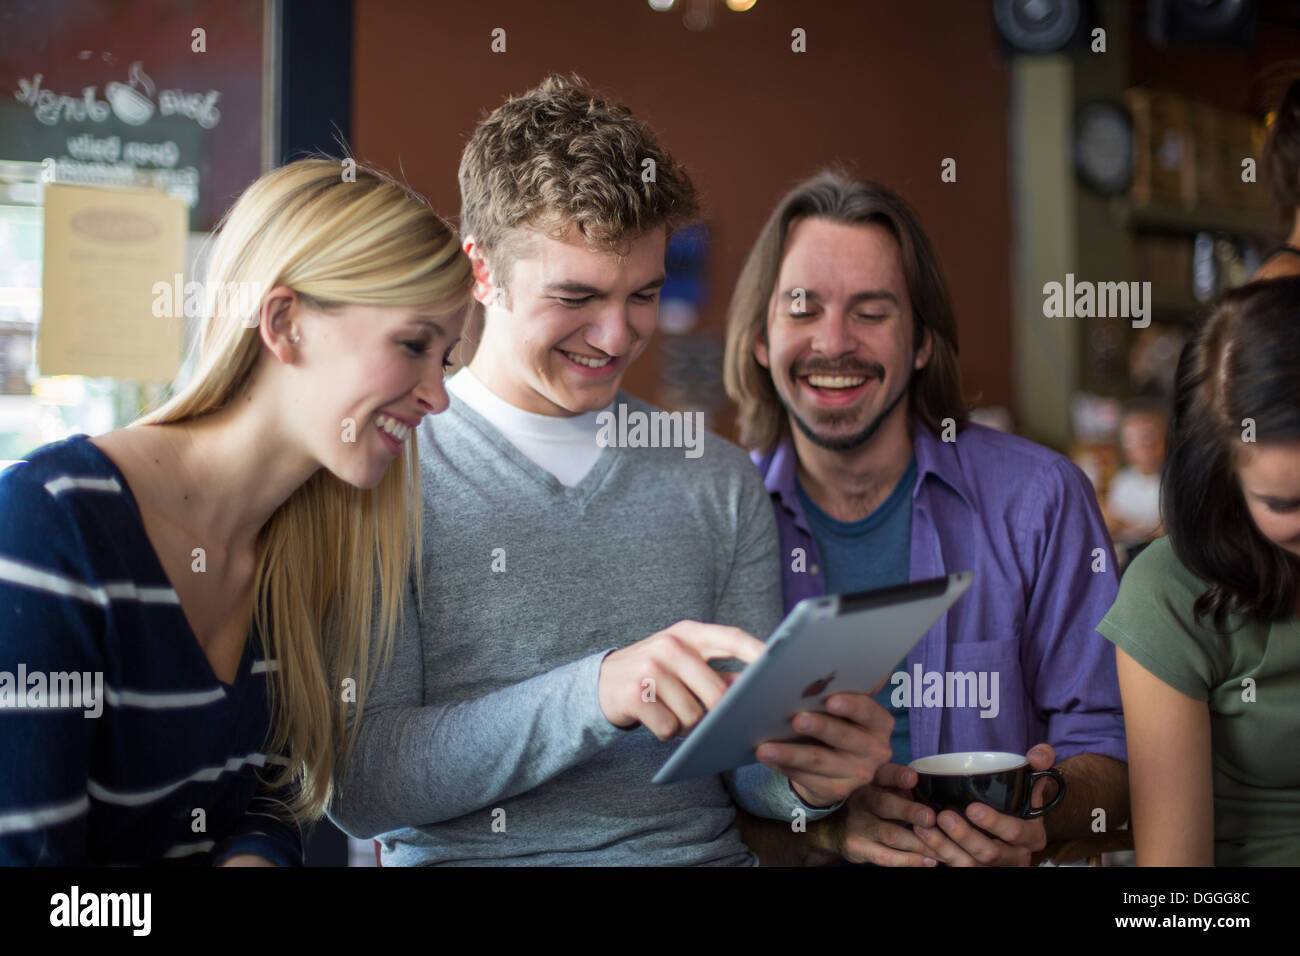 Group of people gathered around digital tablet in cafe - Stock Image